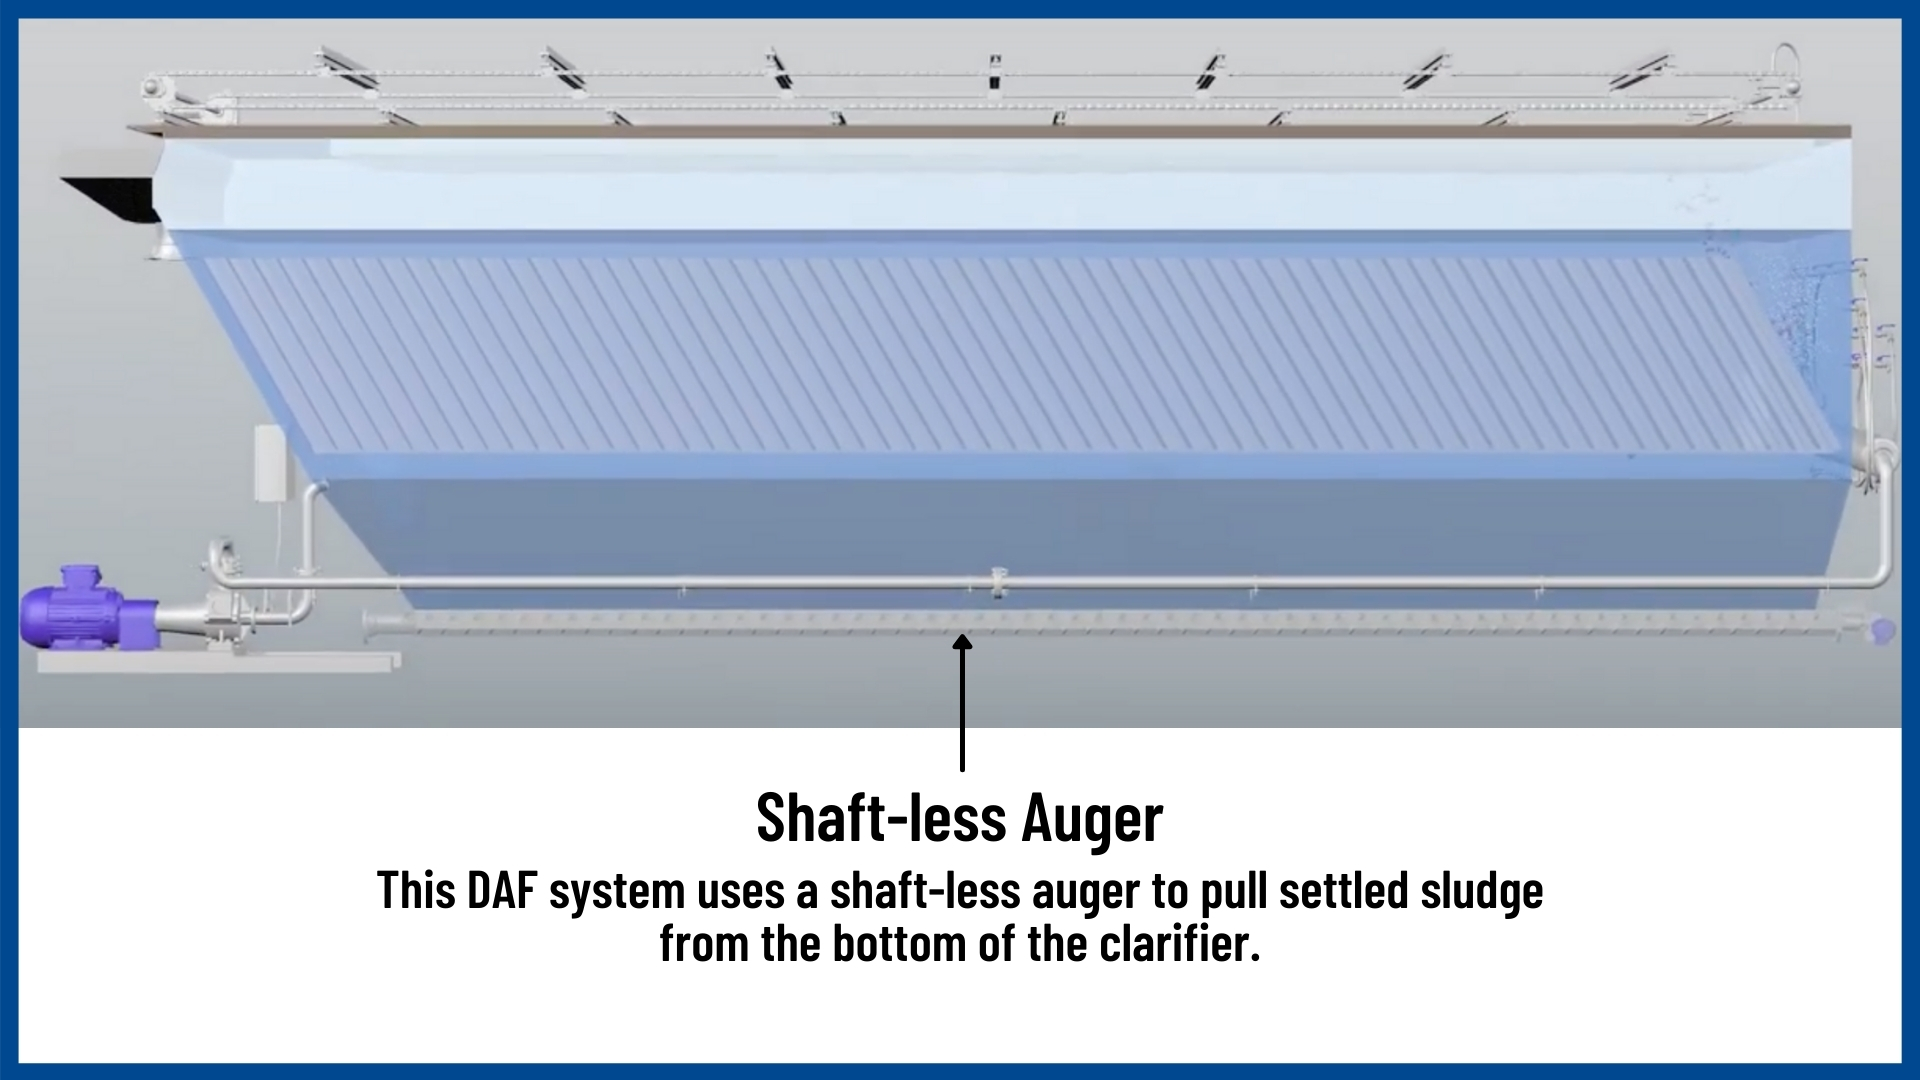 A rendered image of a DAF clarifier with a description highlighting the shaftless auger.